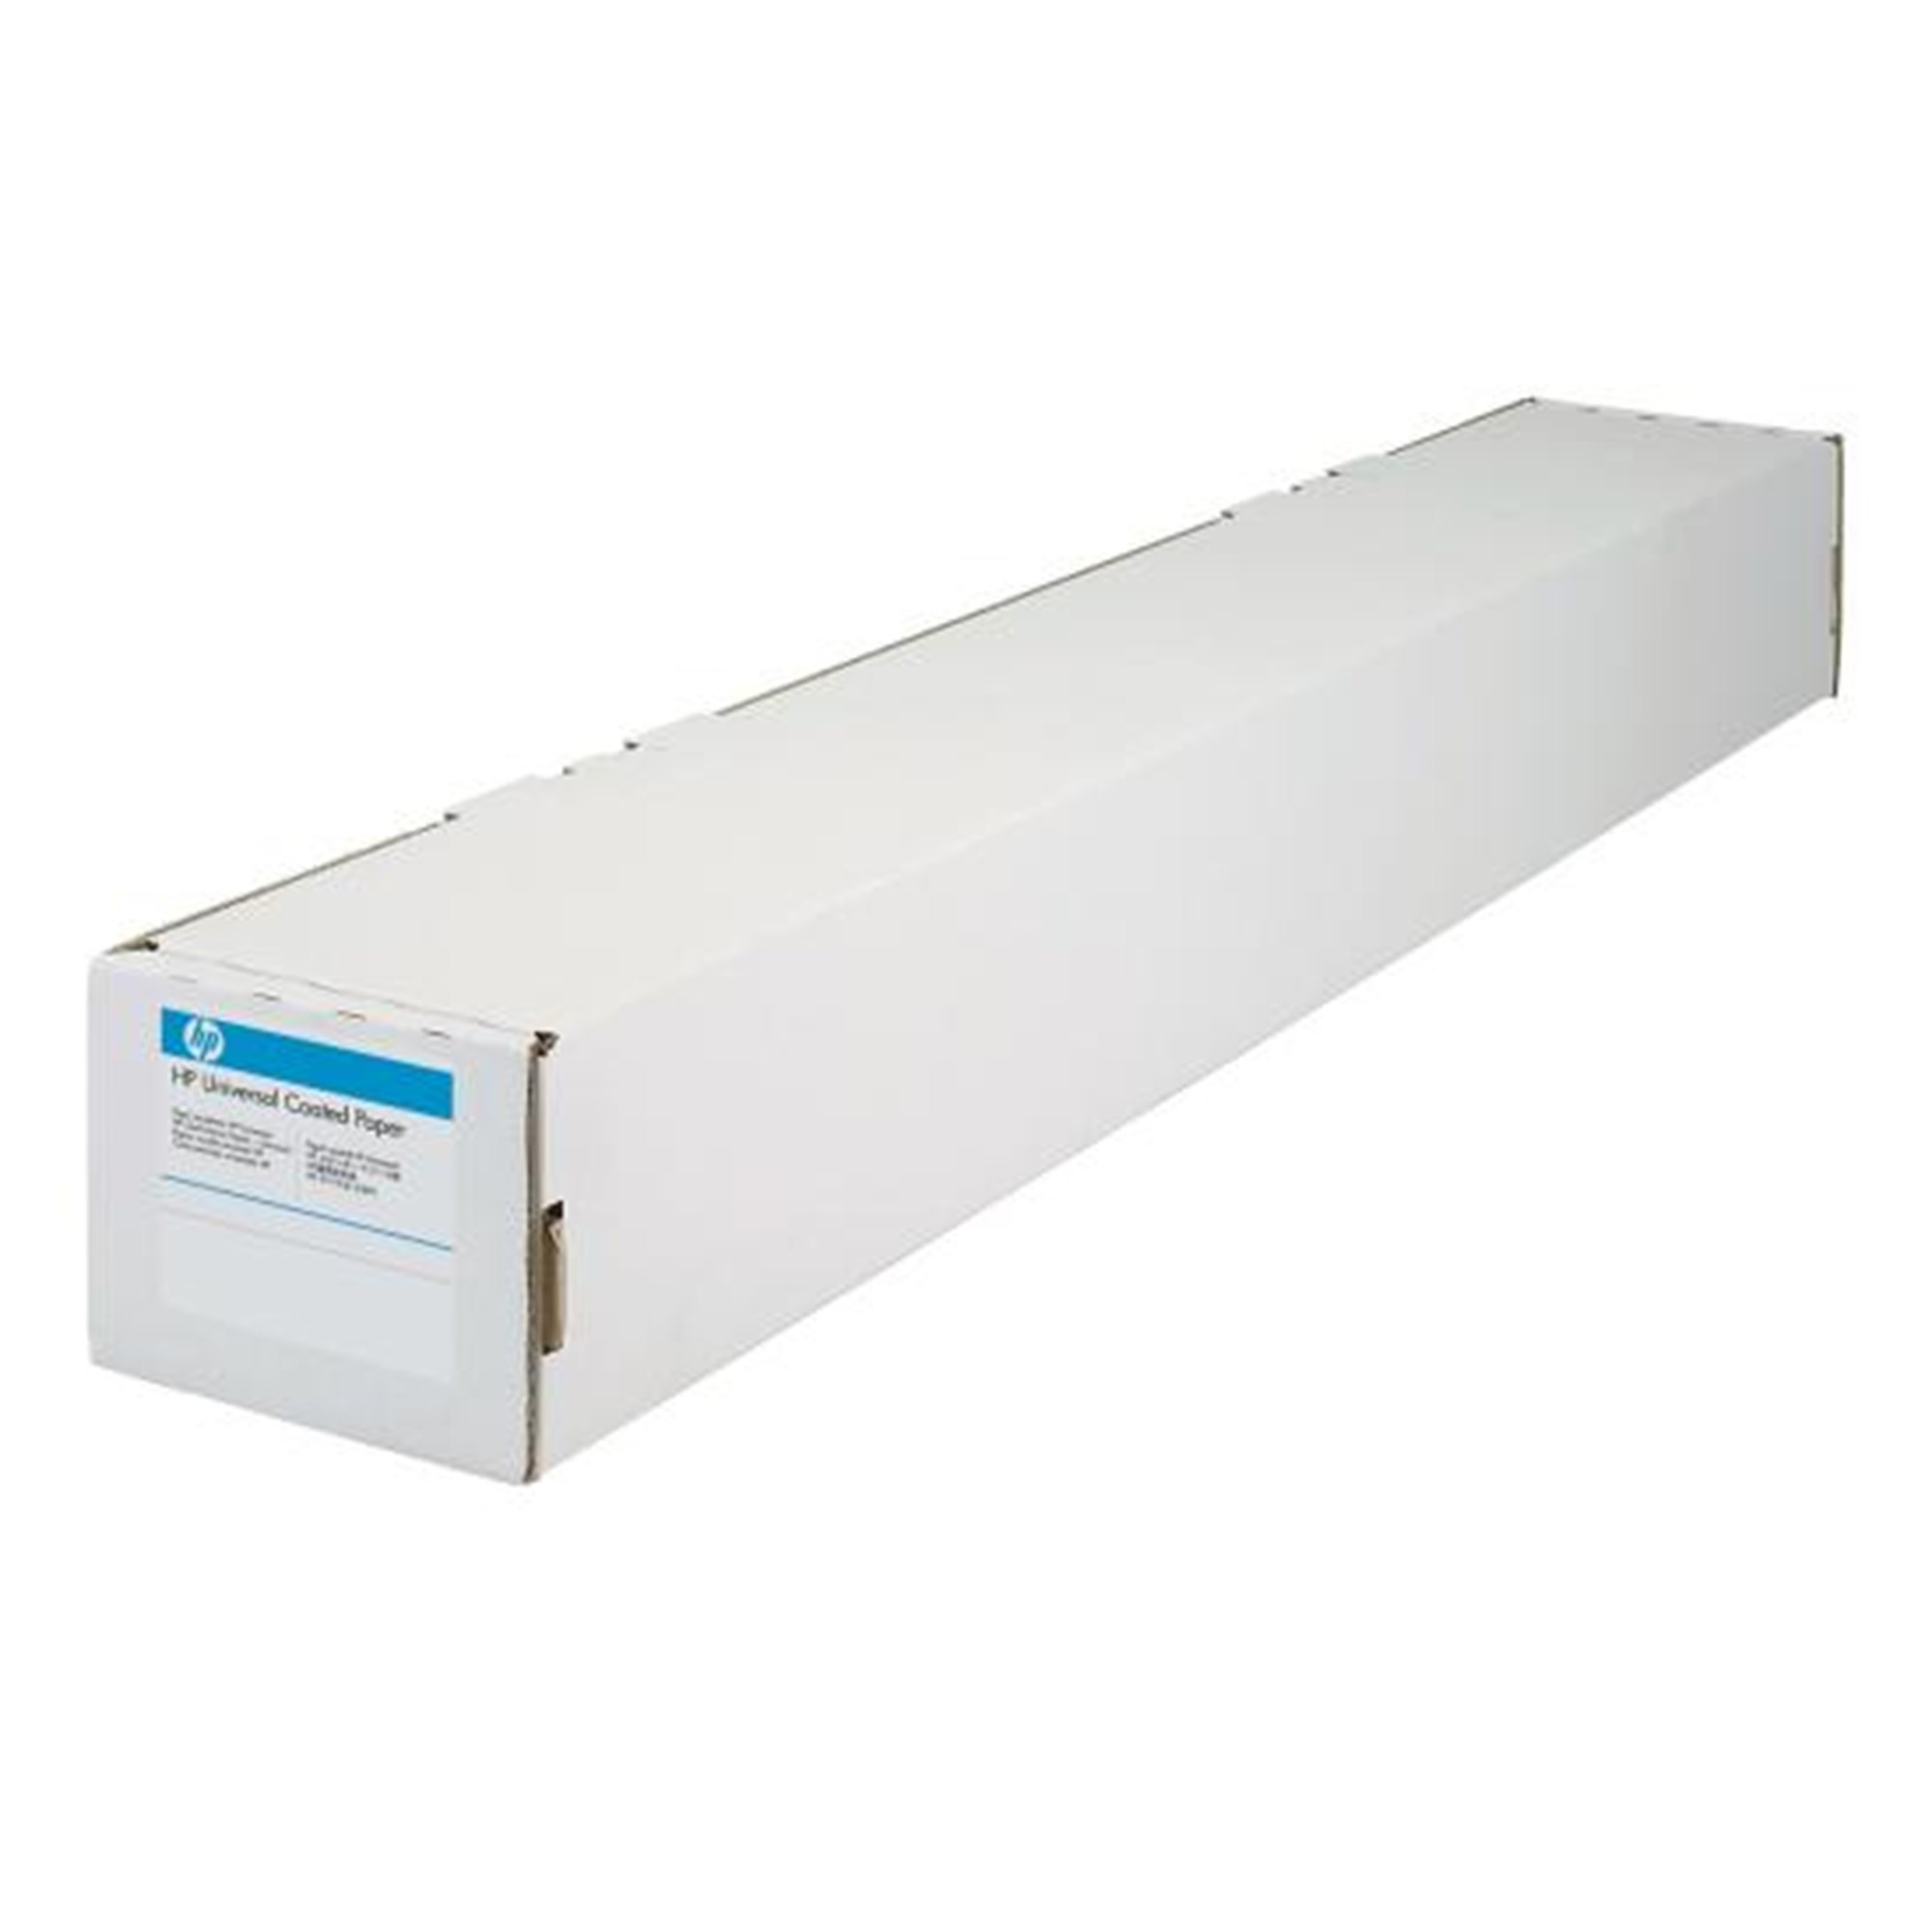 Image of 36'' Uni. coated 131g914mm x 30,4m